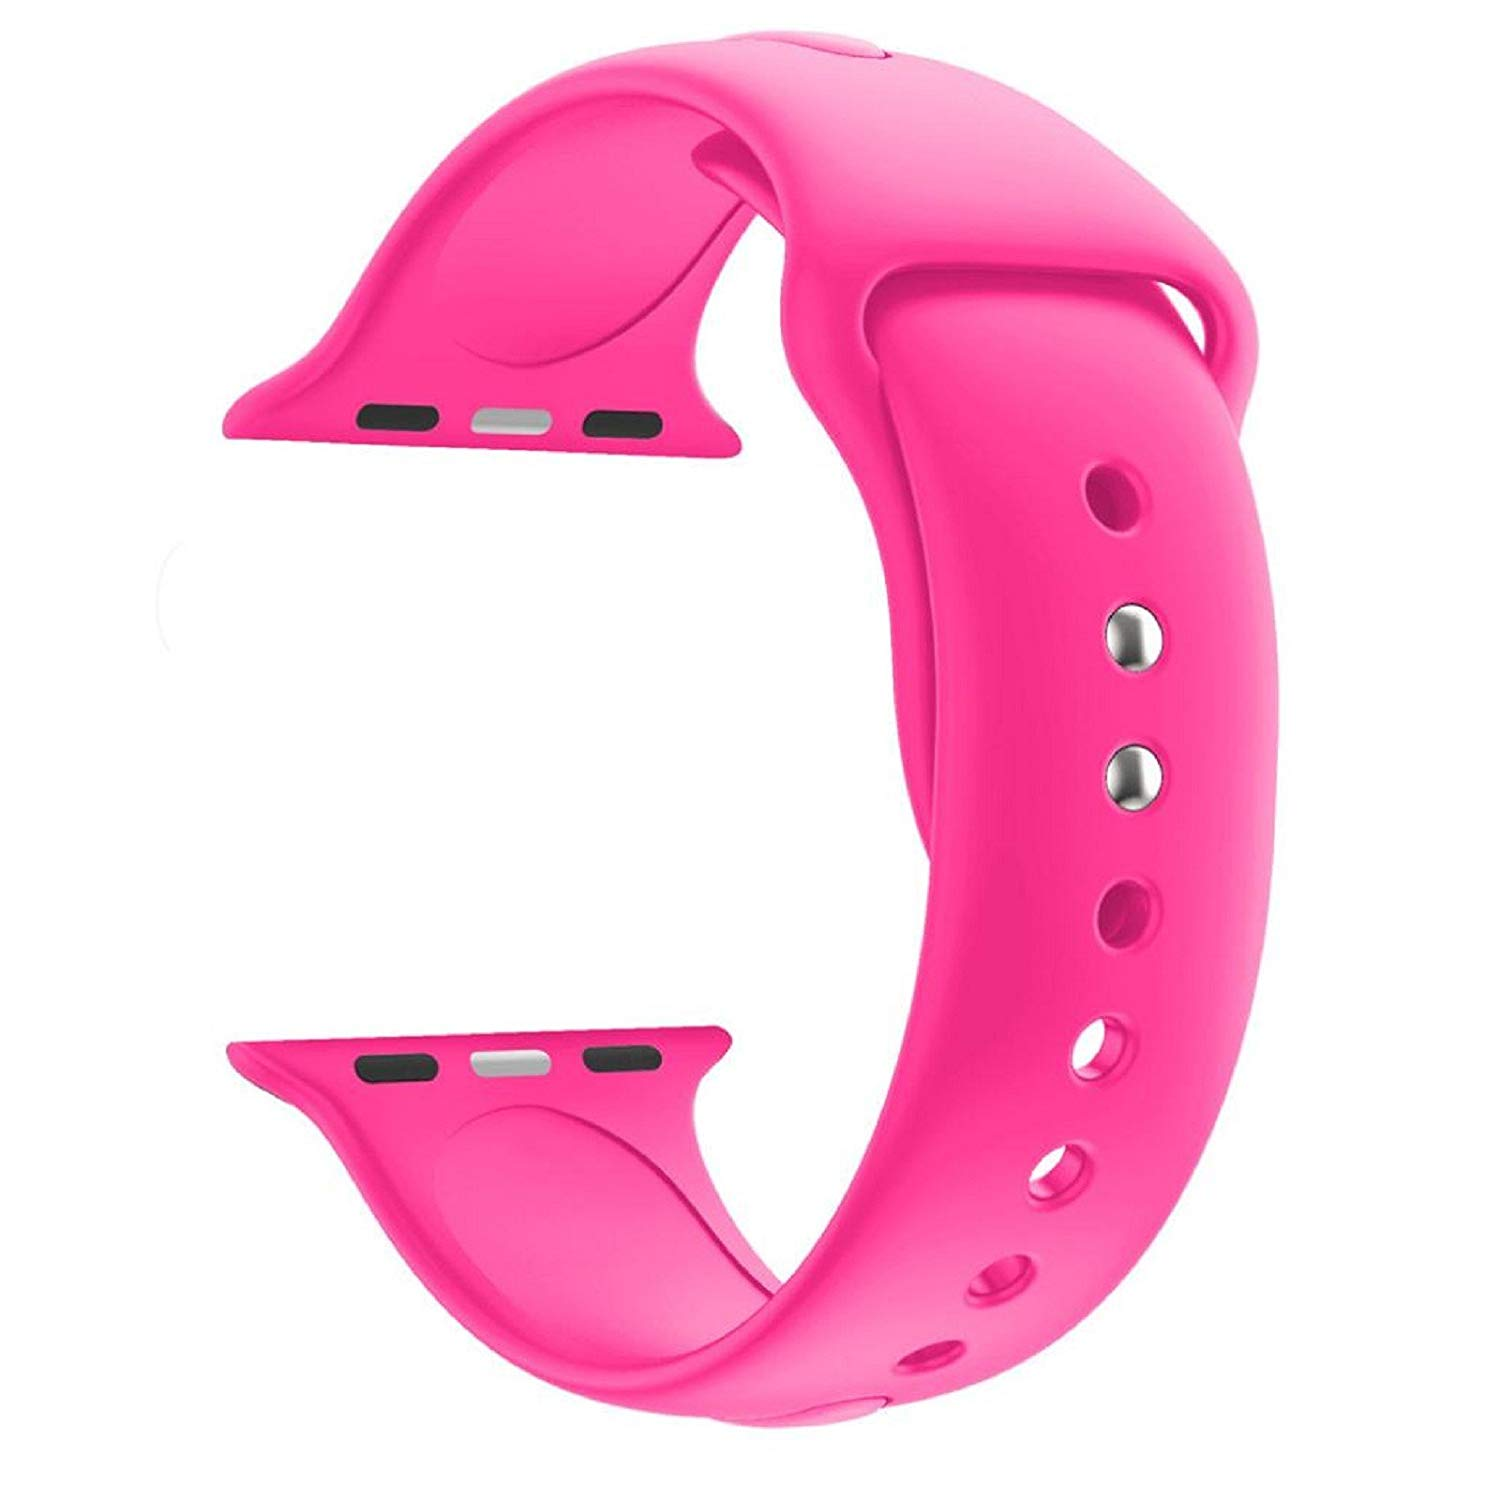 Owill Fashion Sports Soft Silicone Replacement Sports Band Wrist Strap For Apple Watch Series 3 38MM, Wrist Circumference: 140MM-185MM (Pink)